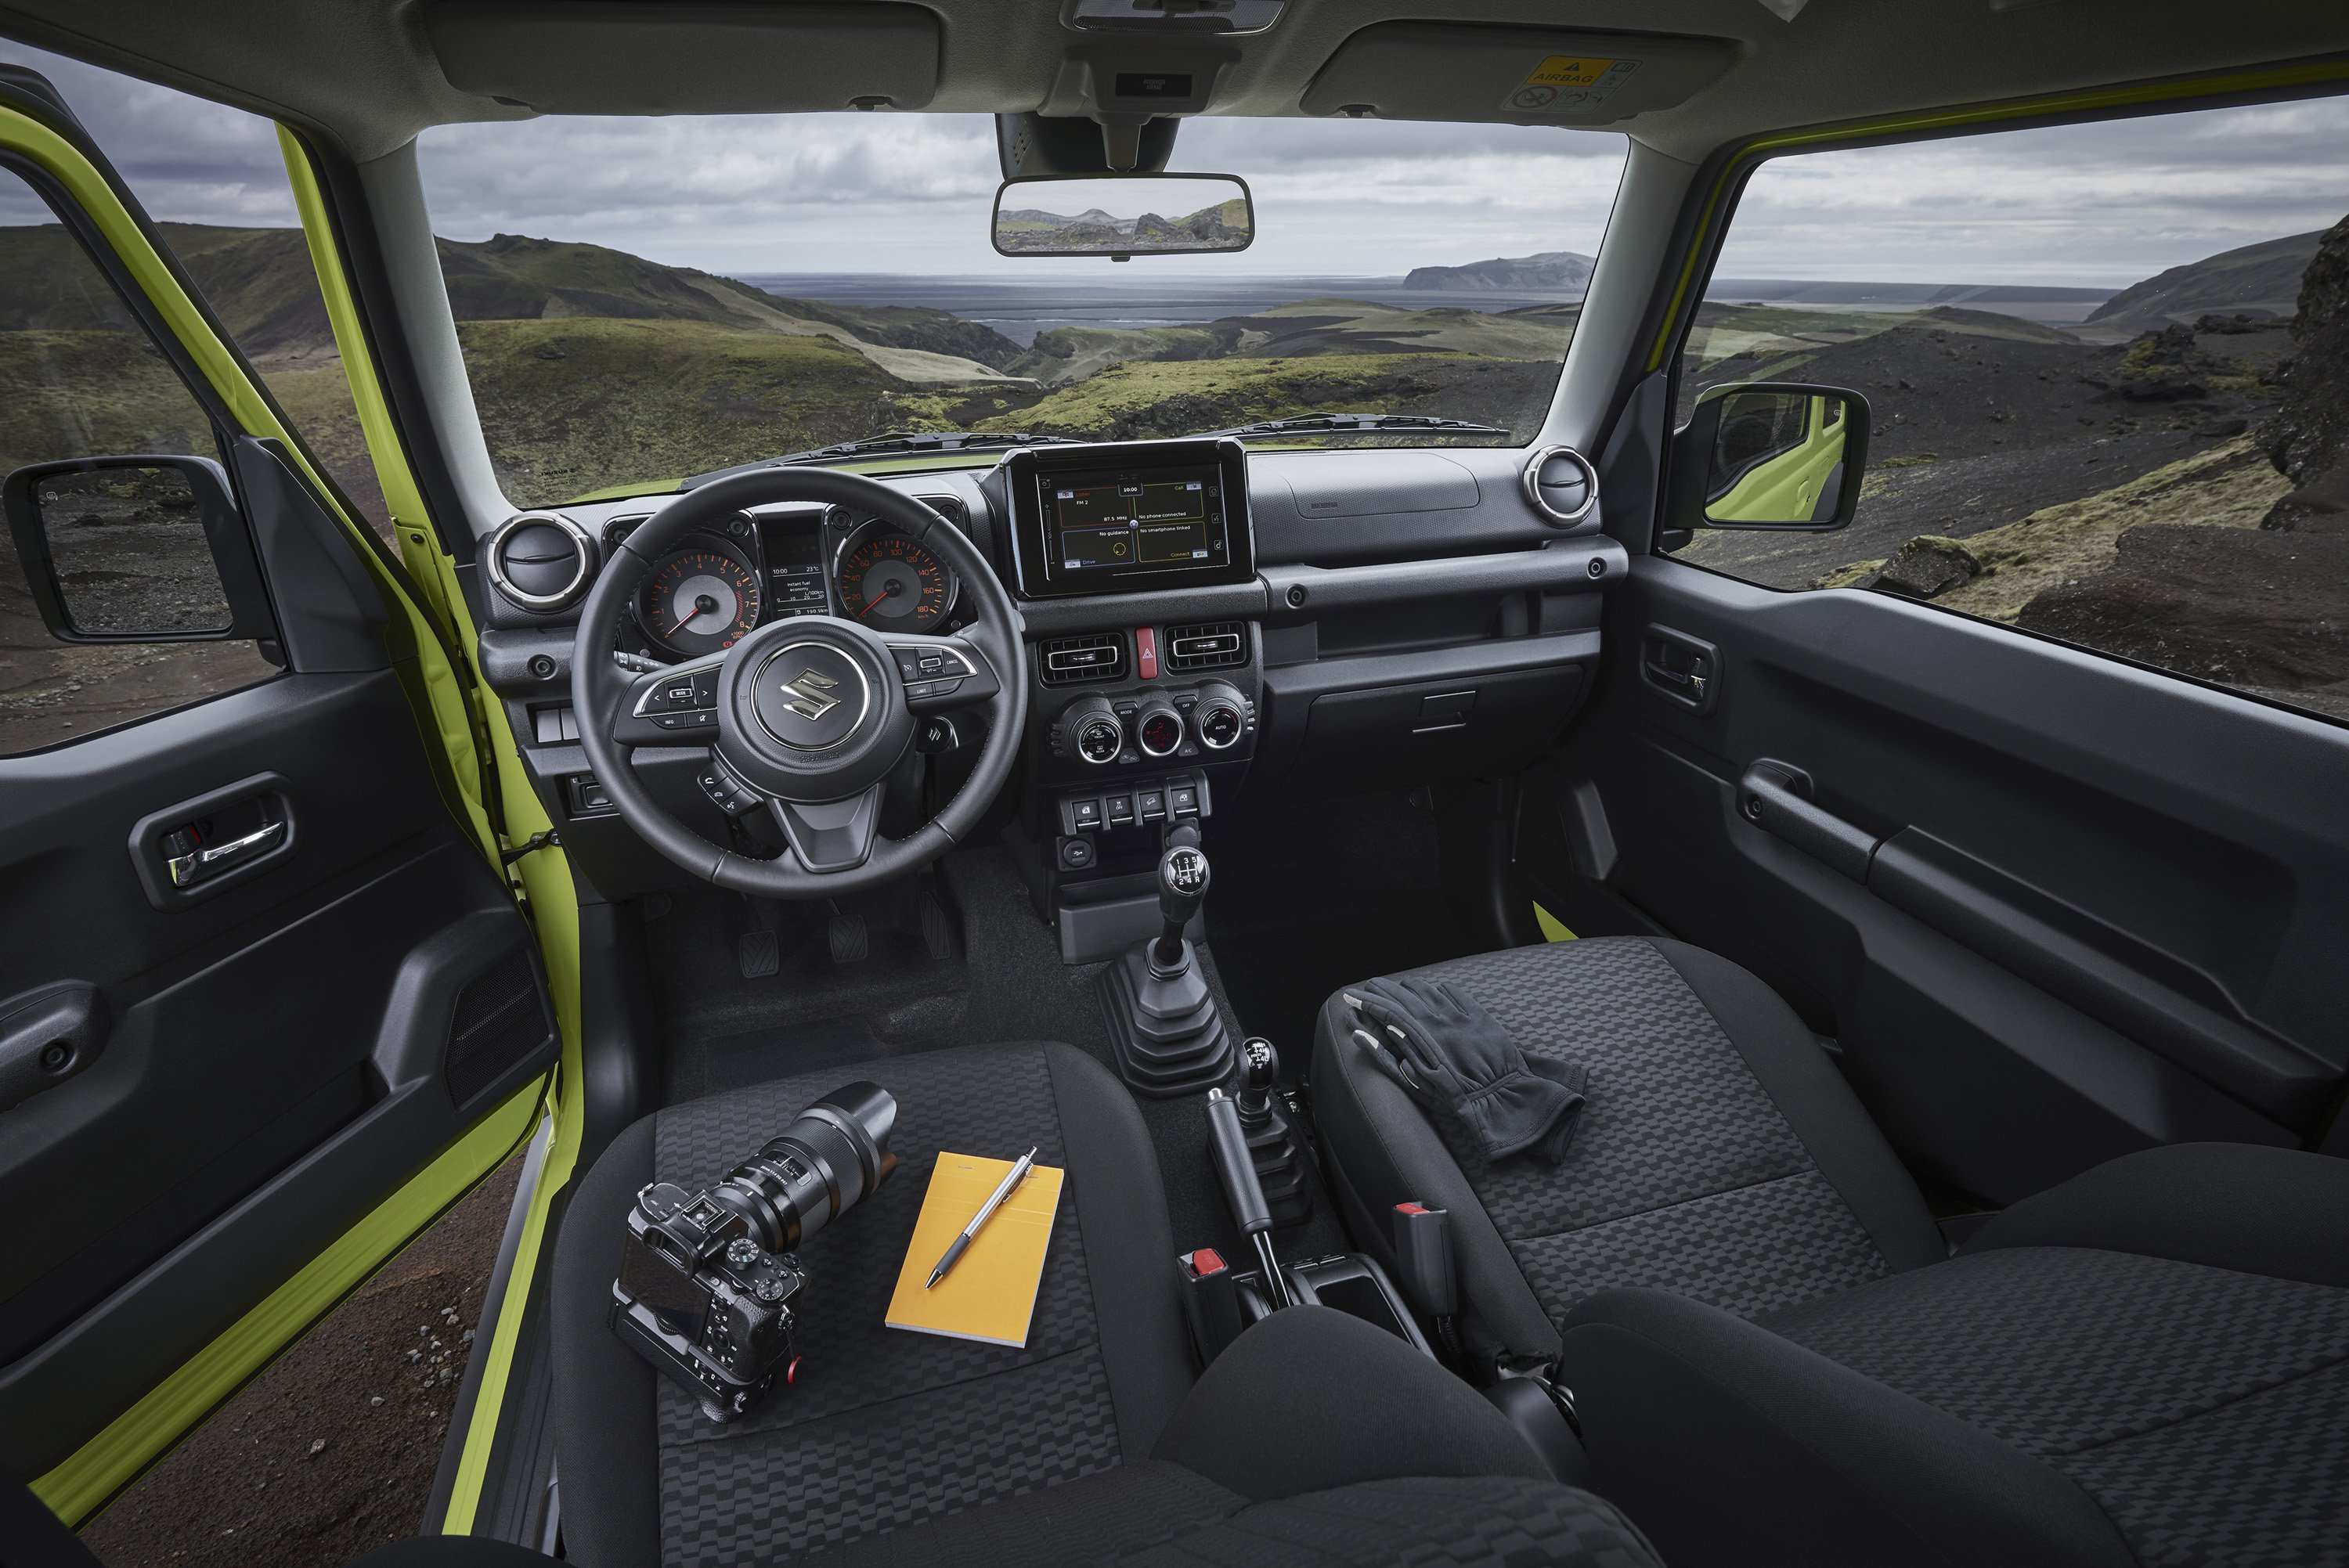 48 A Suzuki Jimny 2019 Interior New Review